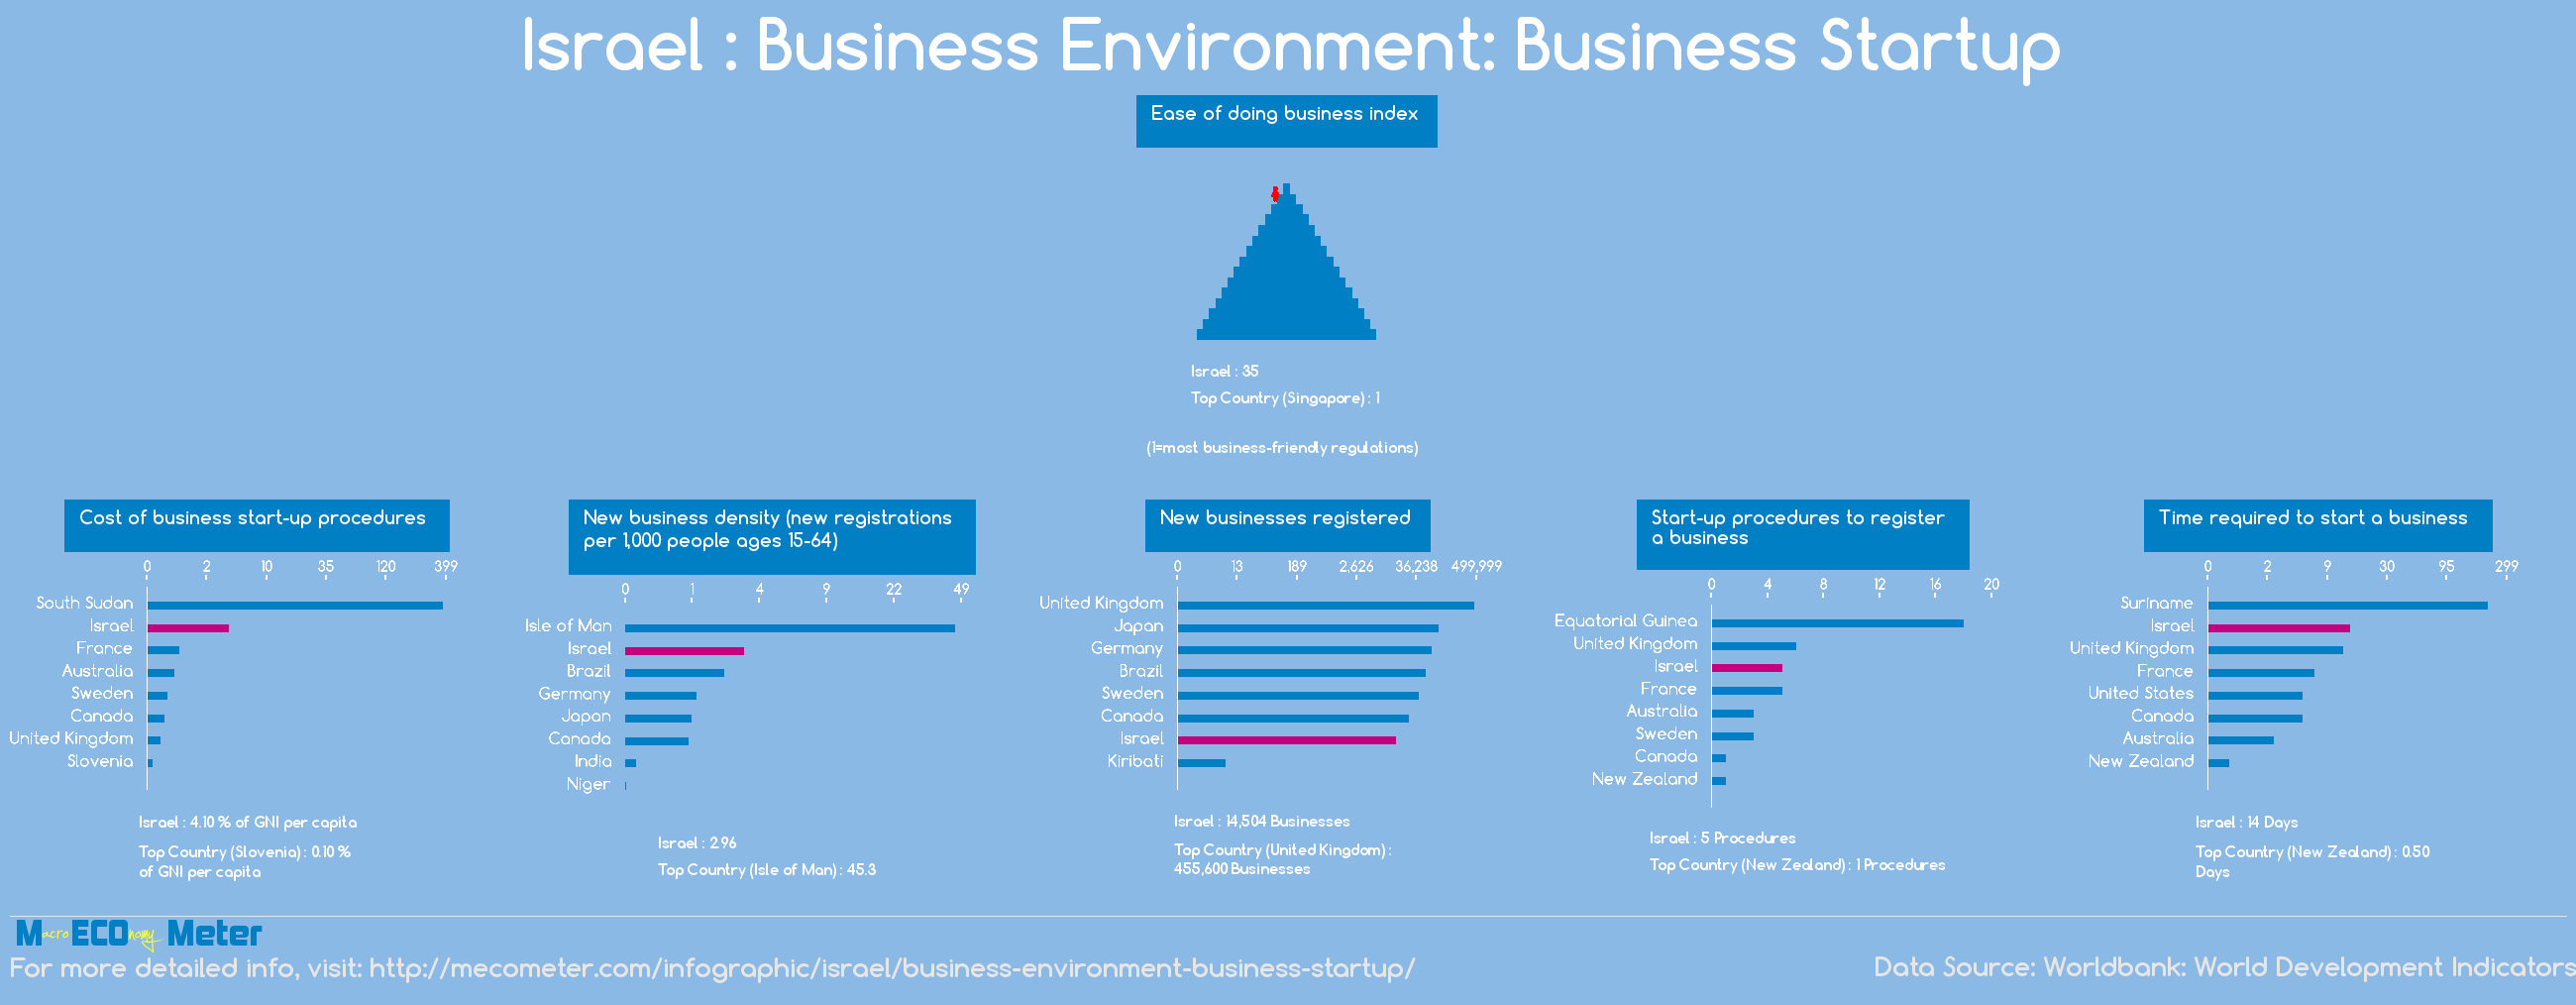 Israel : Business Environment: Business Startup